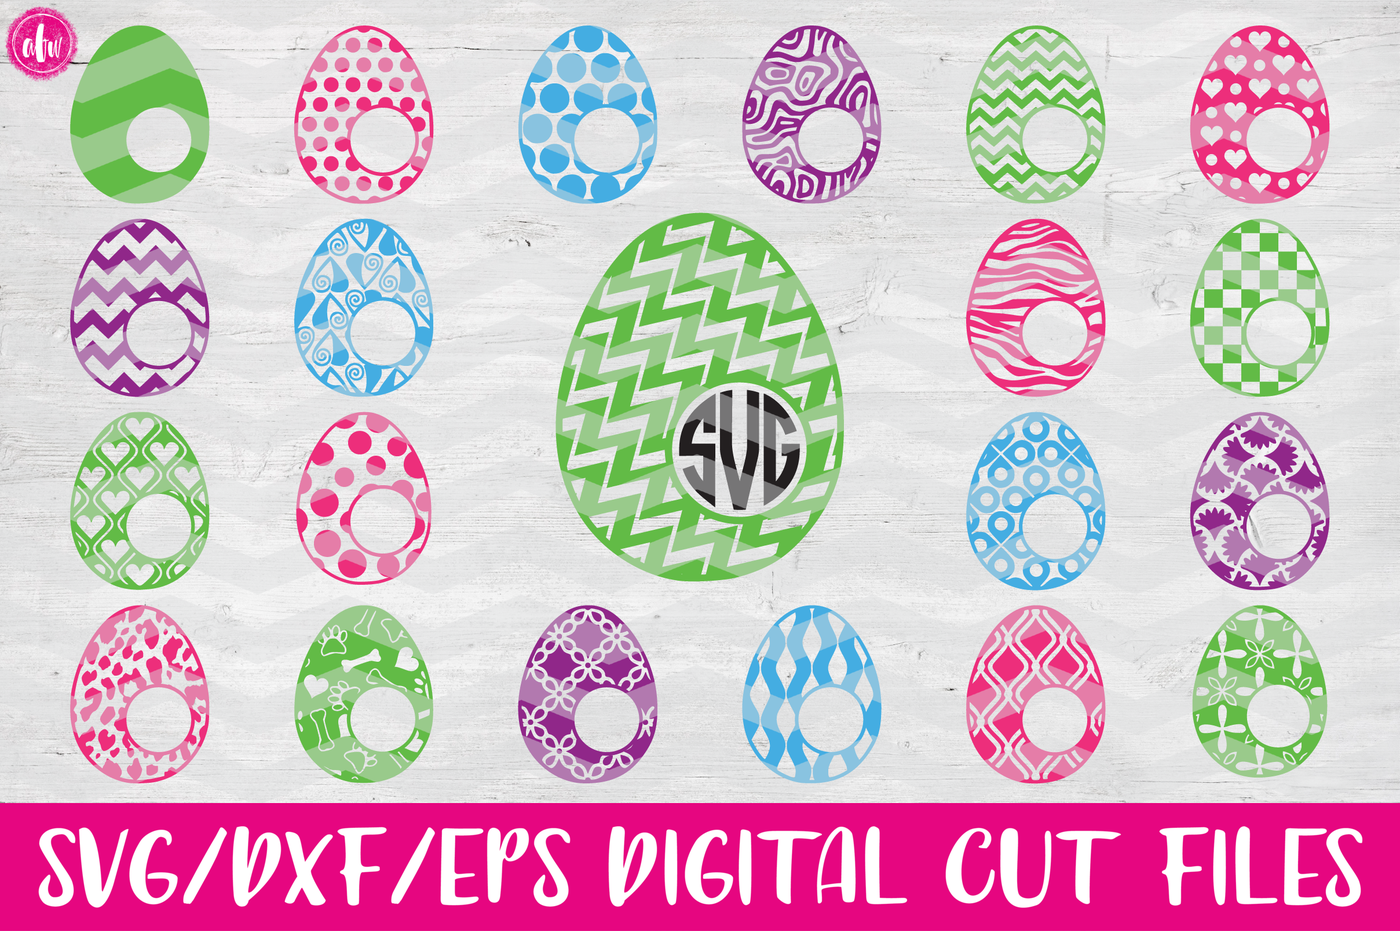 40 Patterned Monogram Eggs Bundle Svg Dxf Eps Cut Files By Afw Designs Thehungryjpeg Com